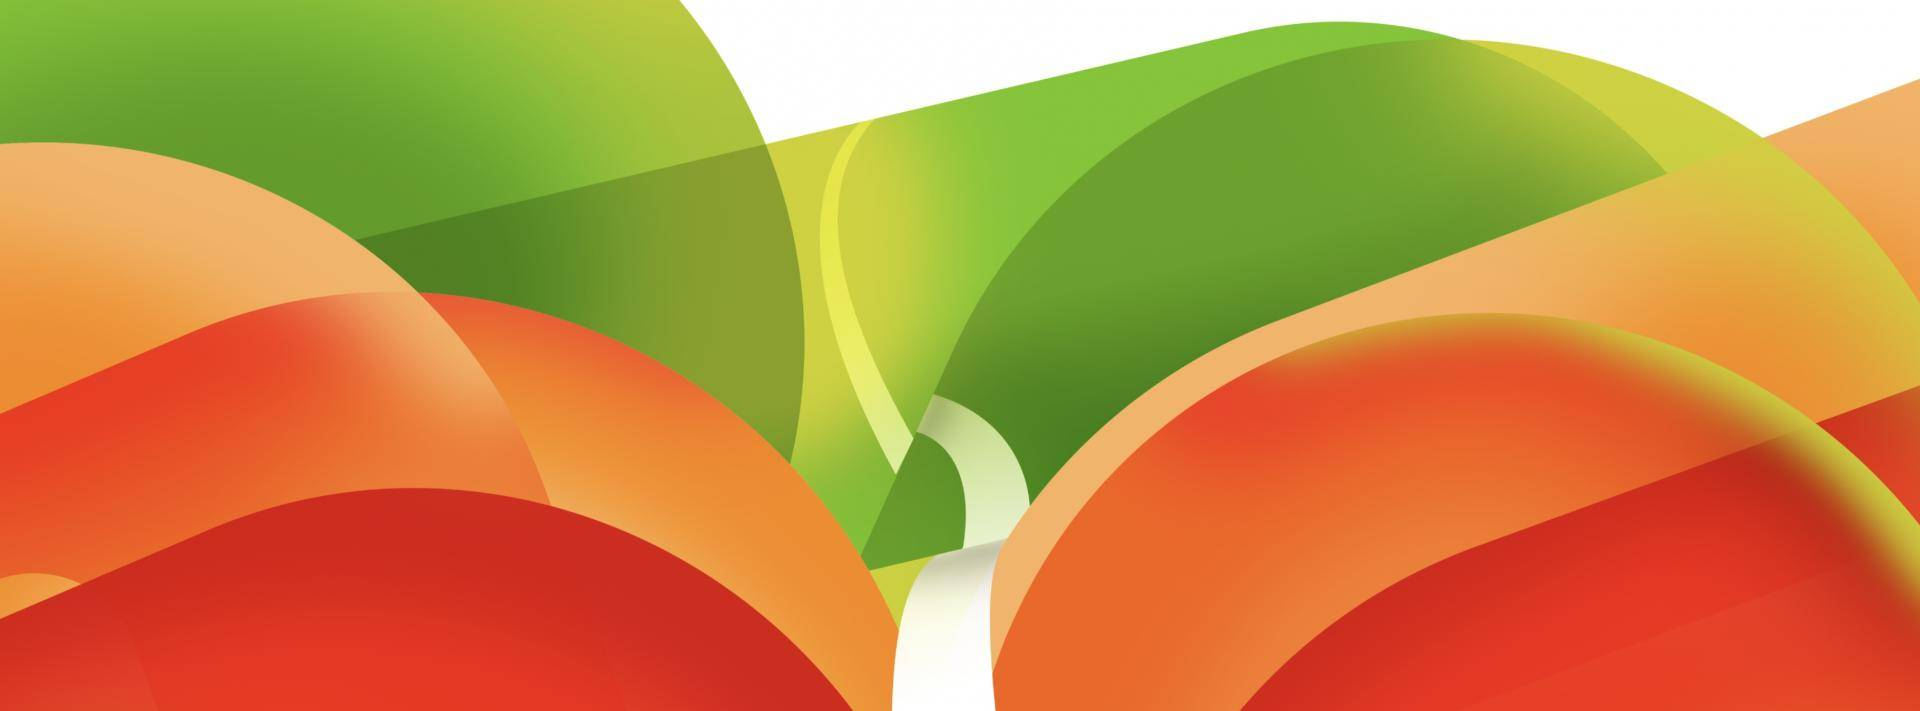 red, green, and orange transparent figures over white background